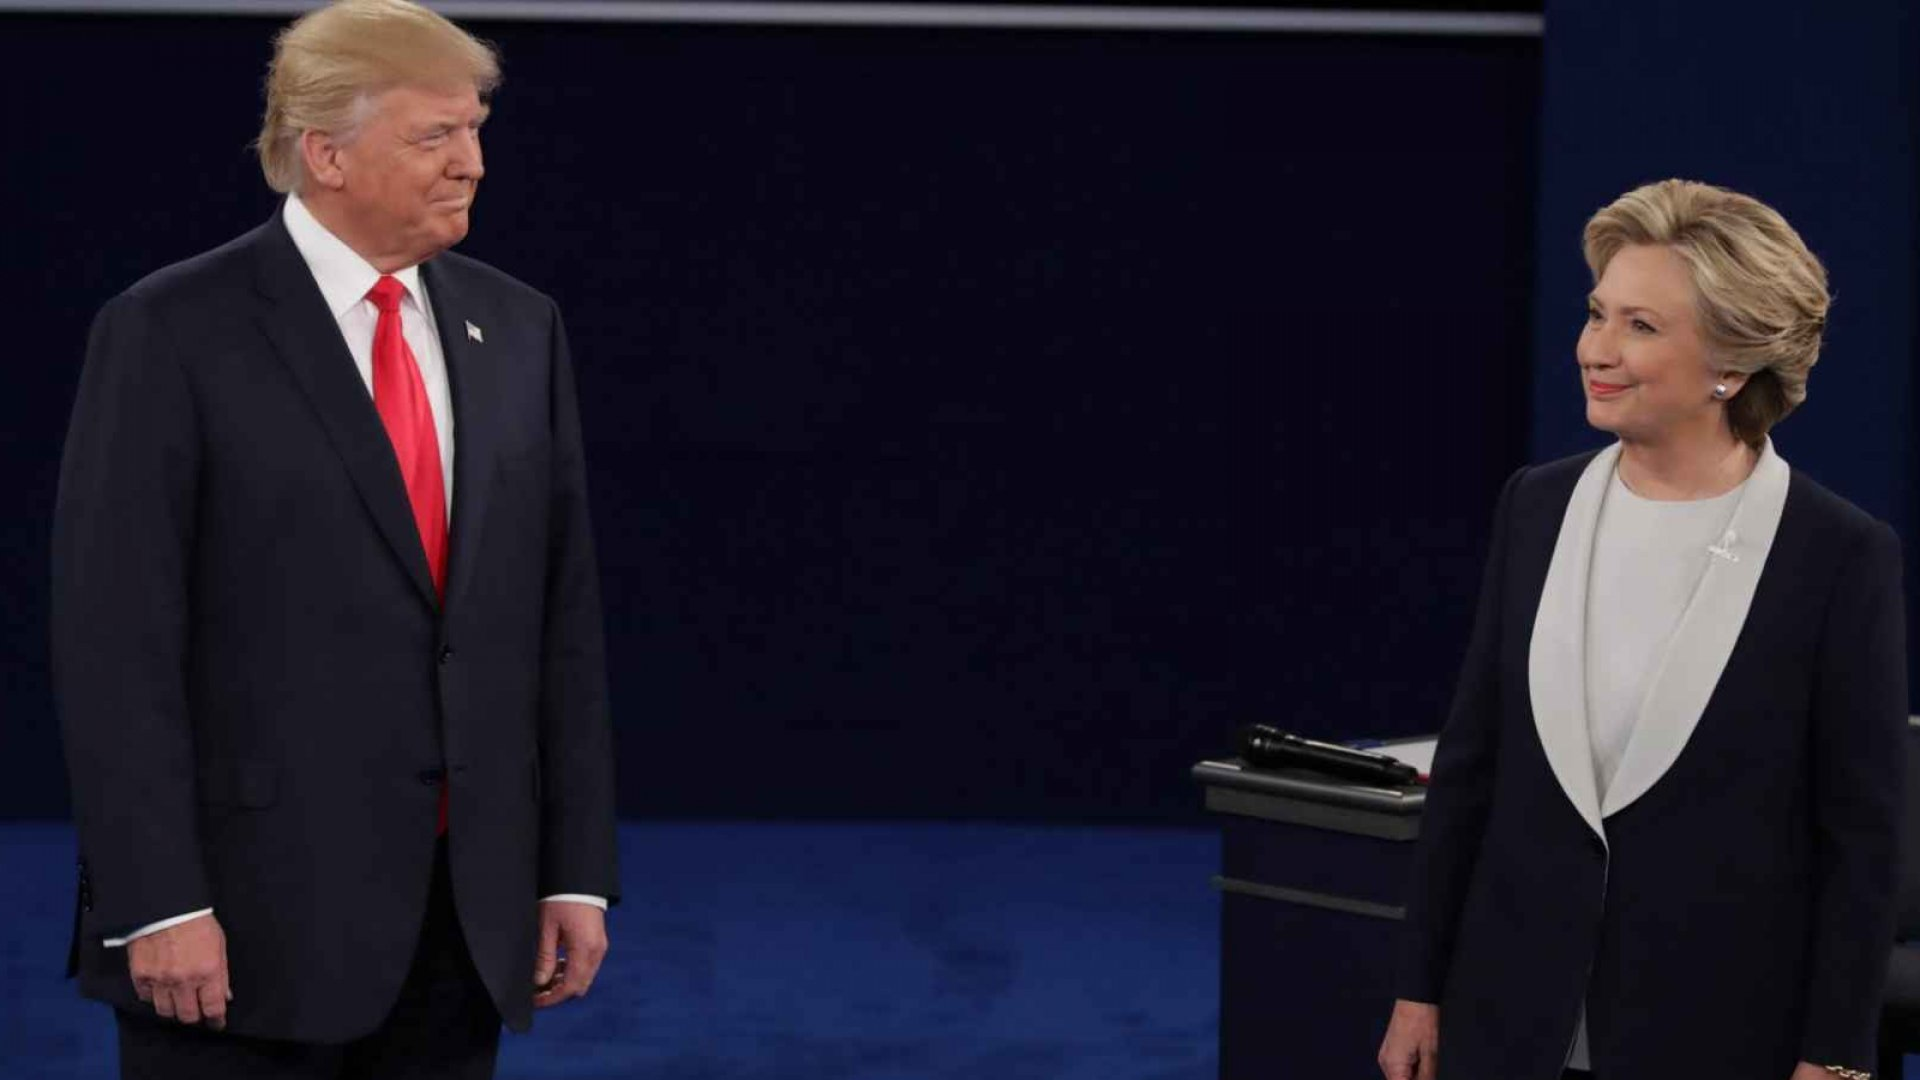 What Shonda Rhimes and Steve Case Thought About the Second Presidential Debate